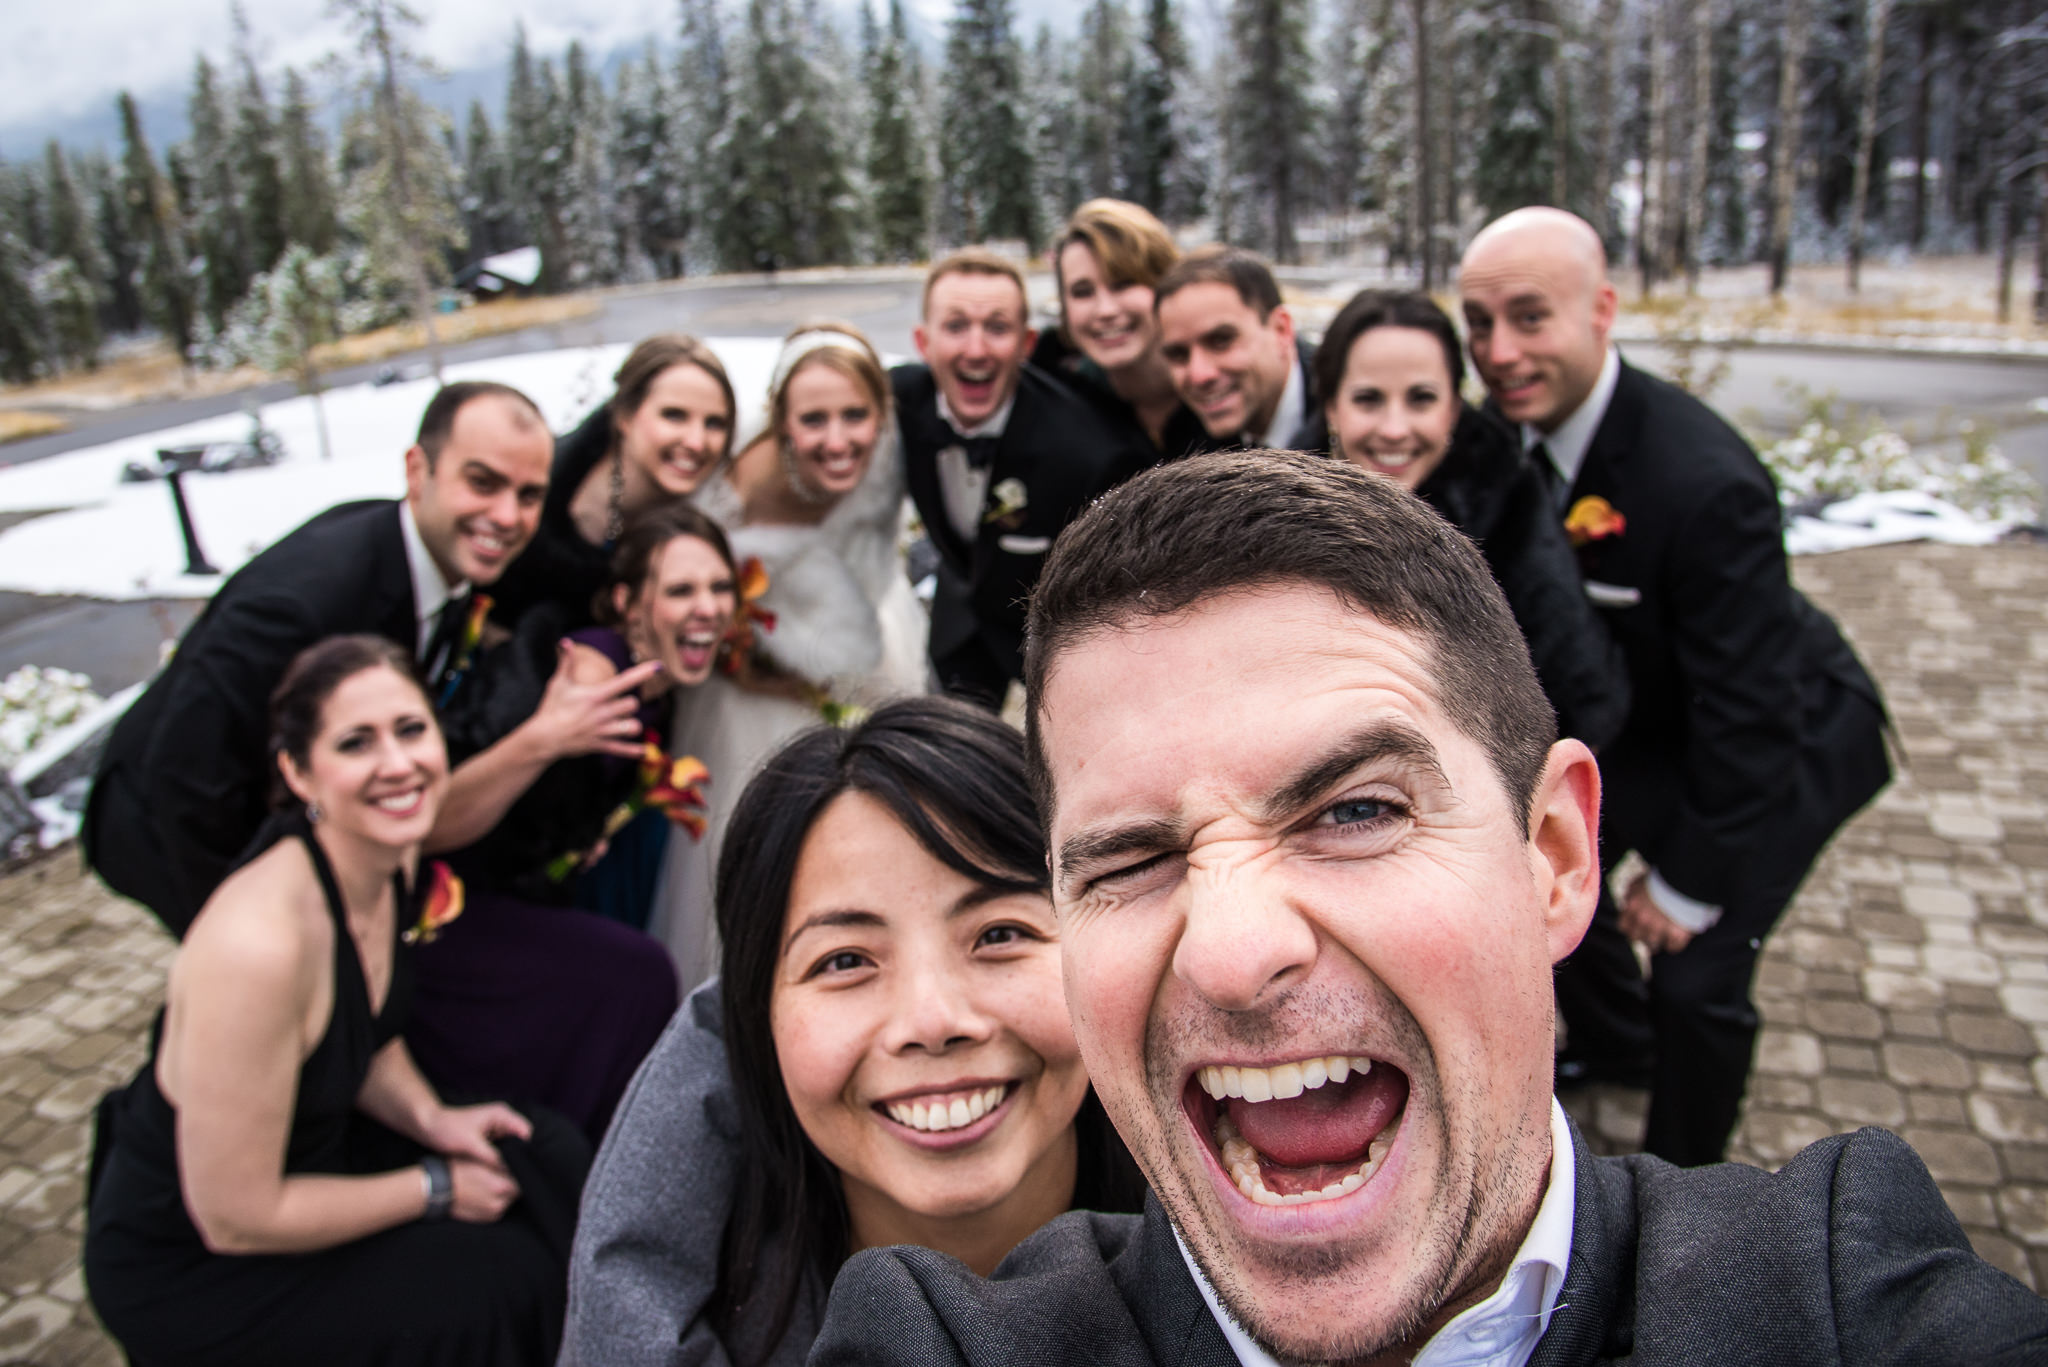 Banff Wedding-48.jpg